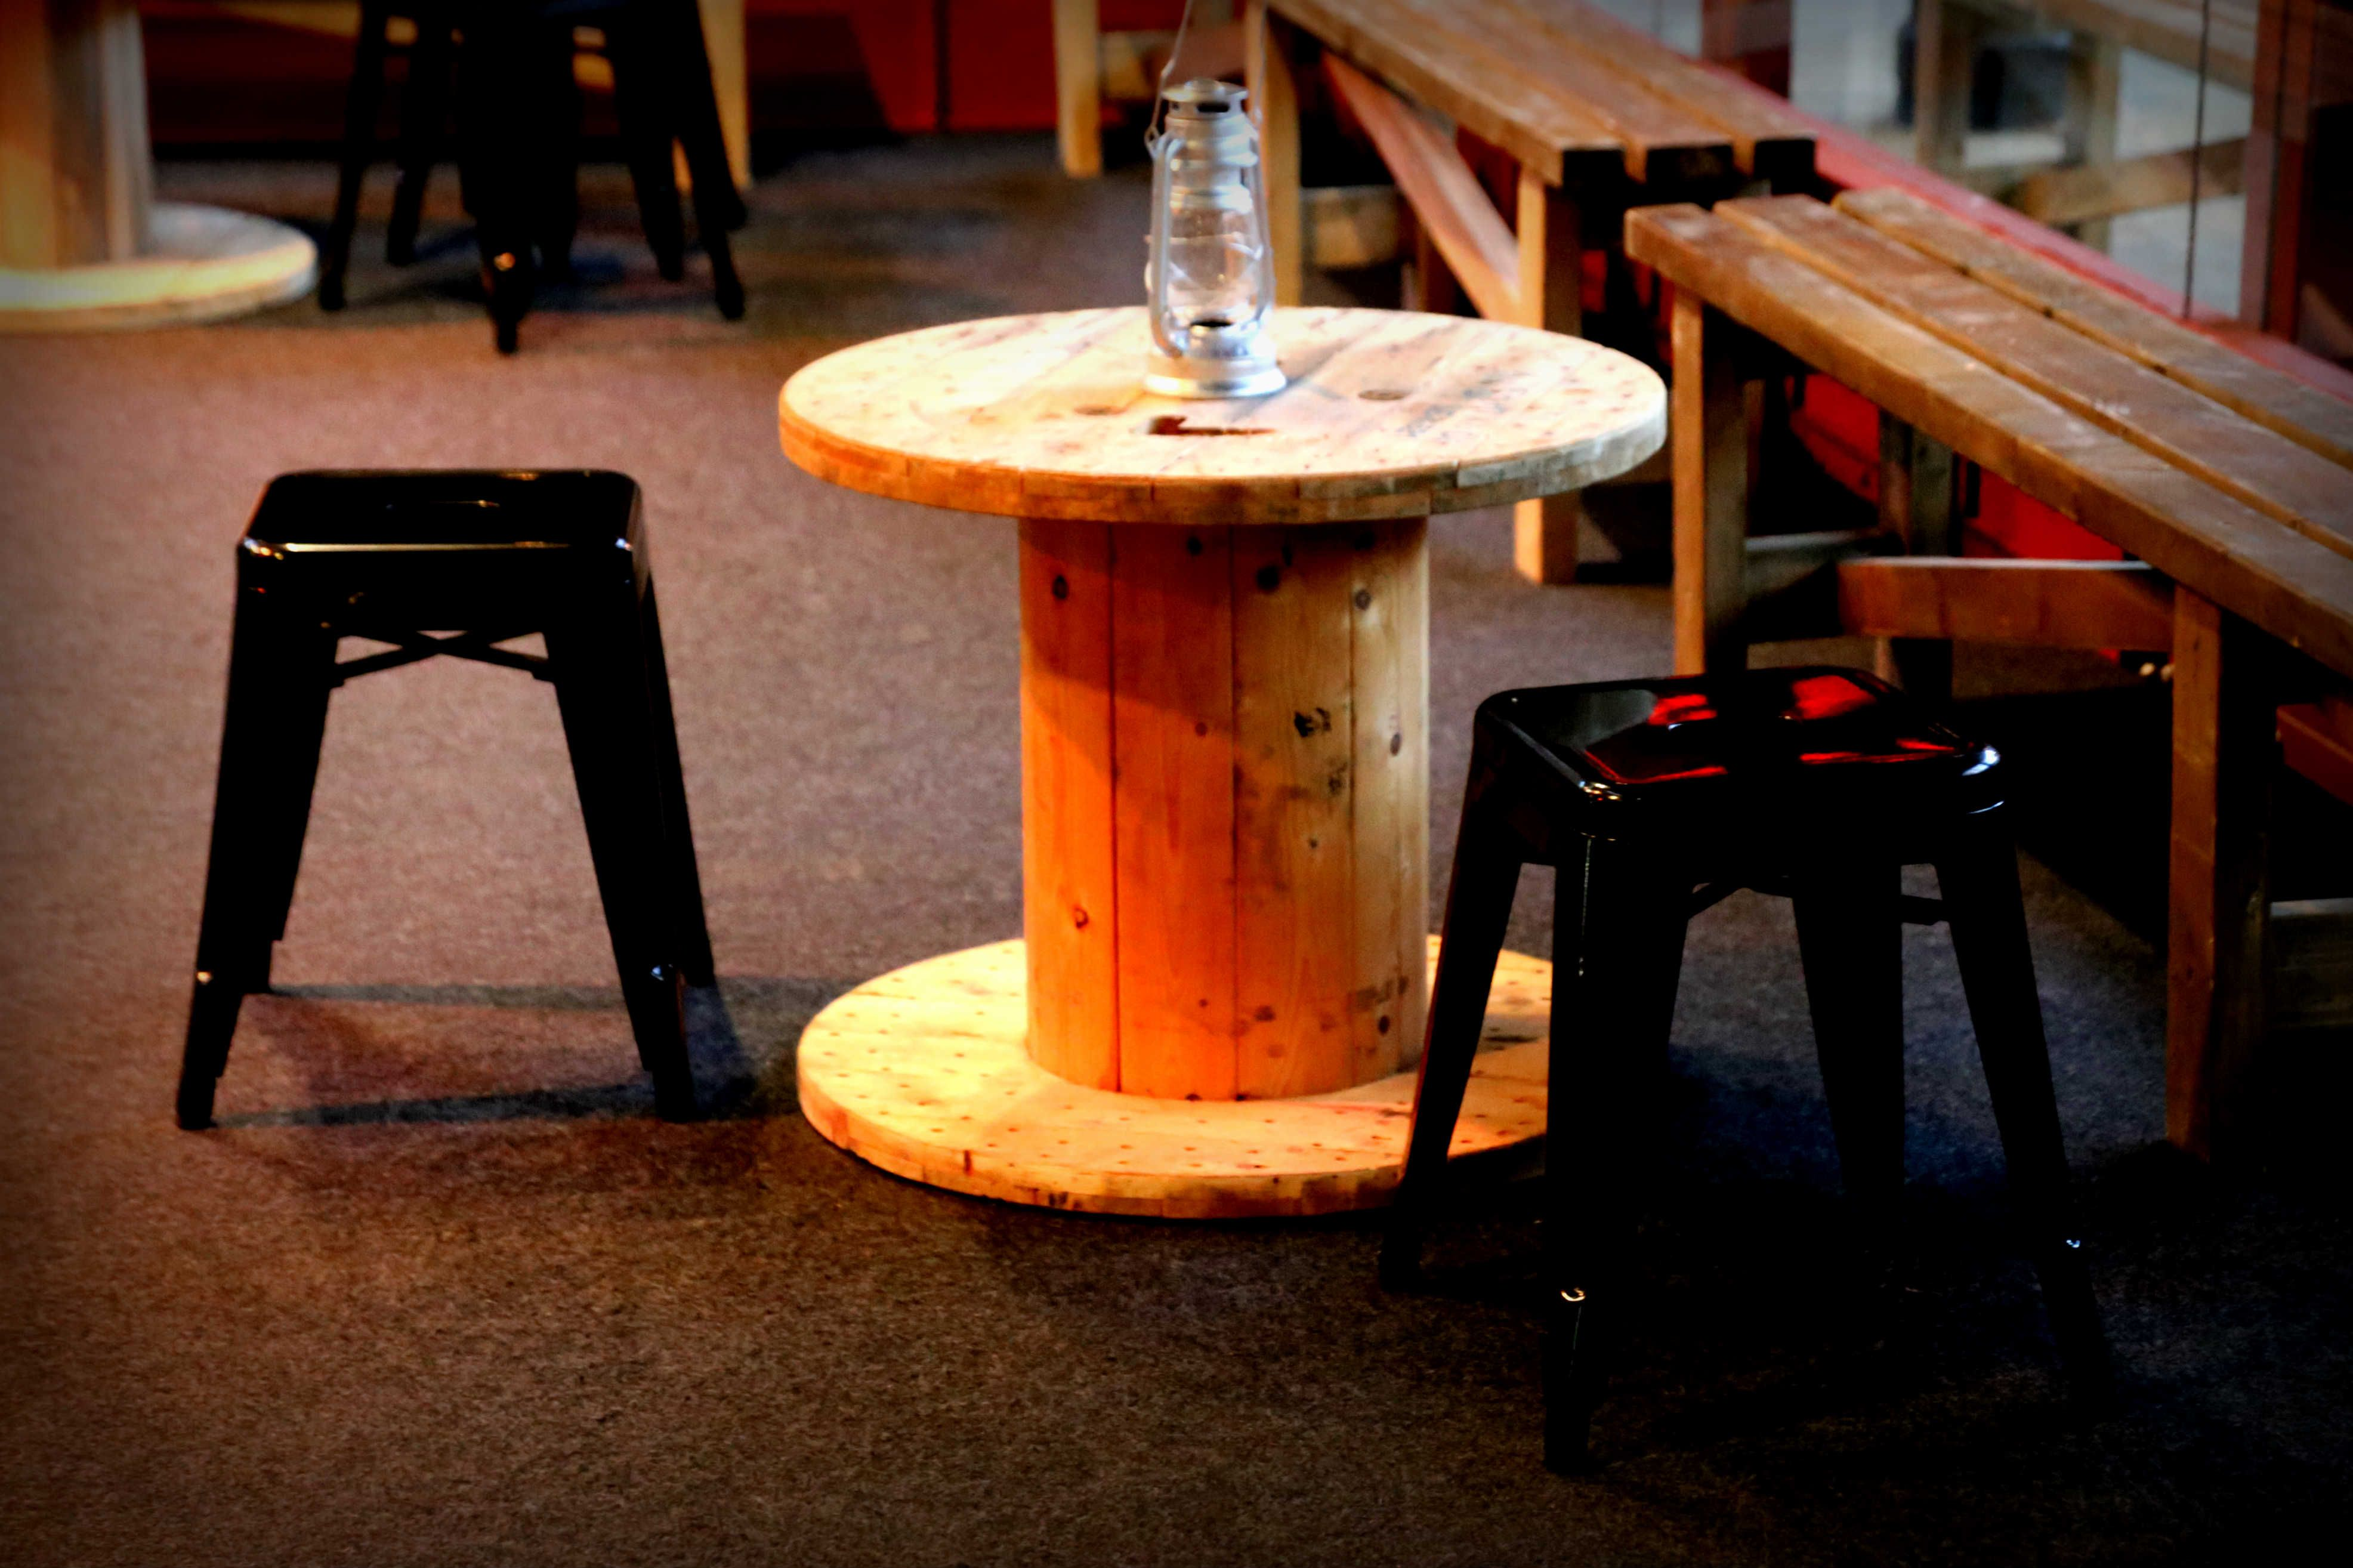 Industrial Stools and Table #Furniture #Ideas #Inspiration #Decor #Design #Reclaimed #Hire #London #TobaccoDock